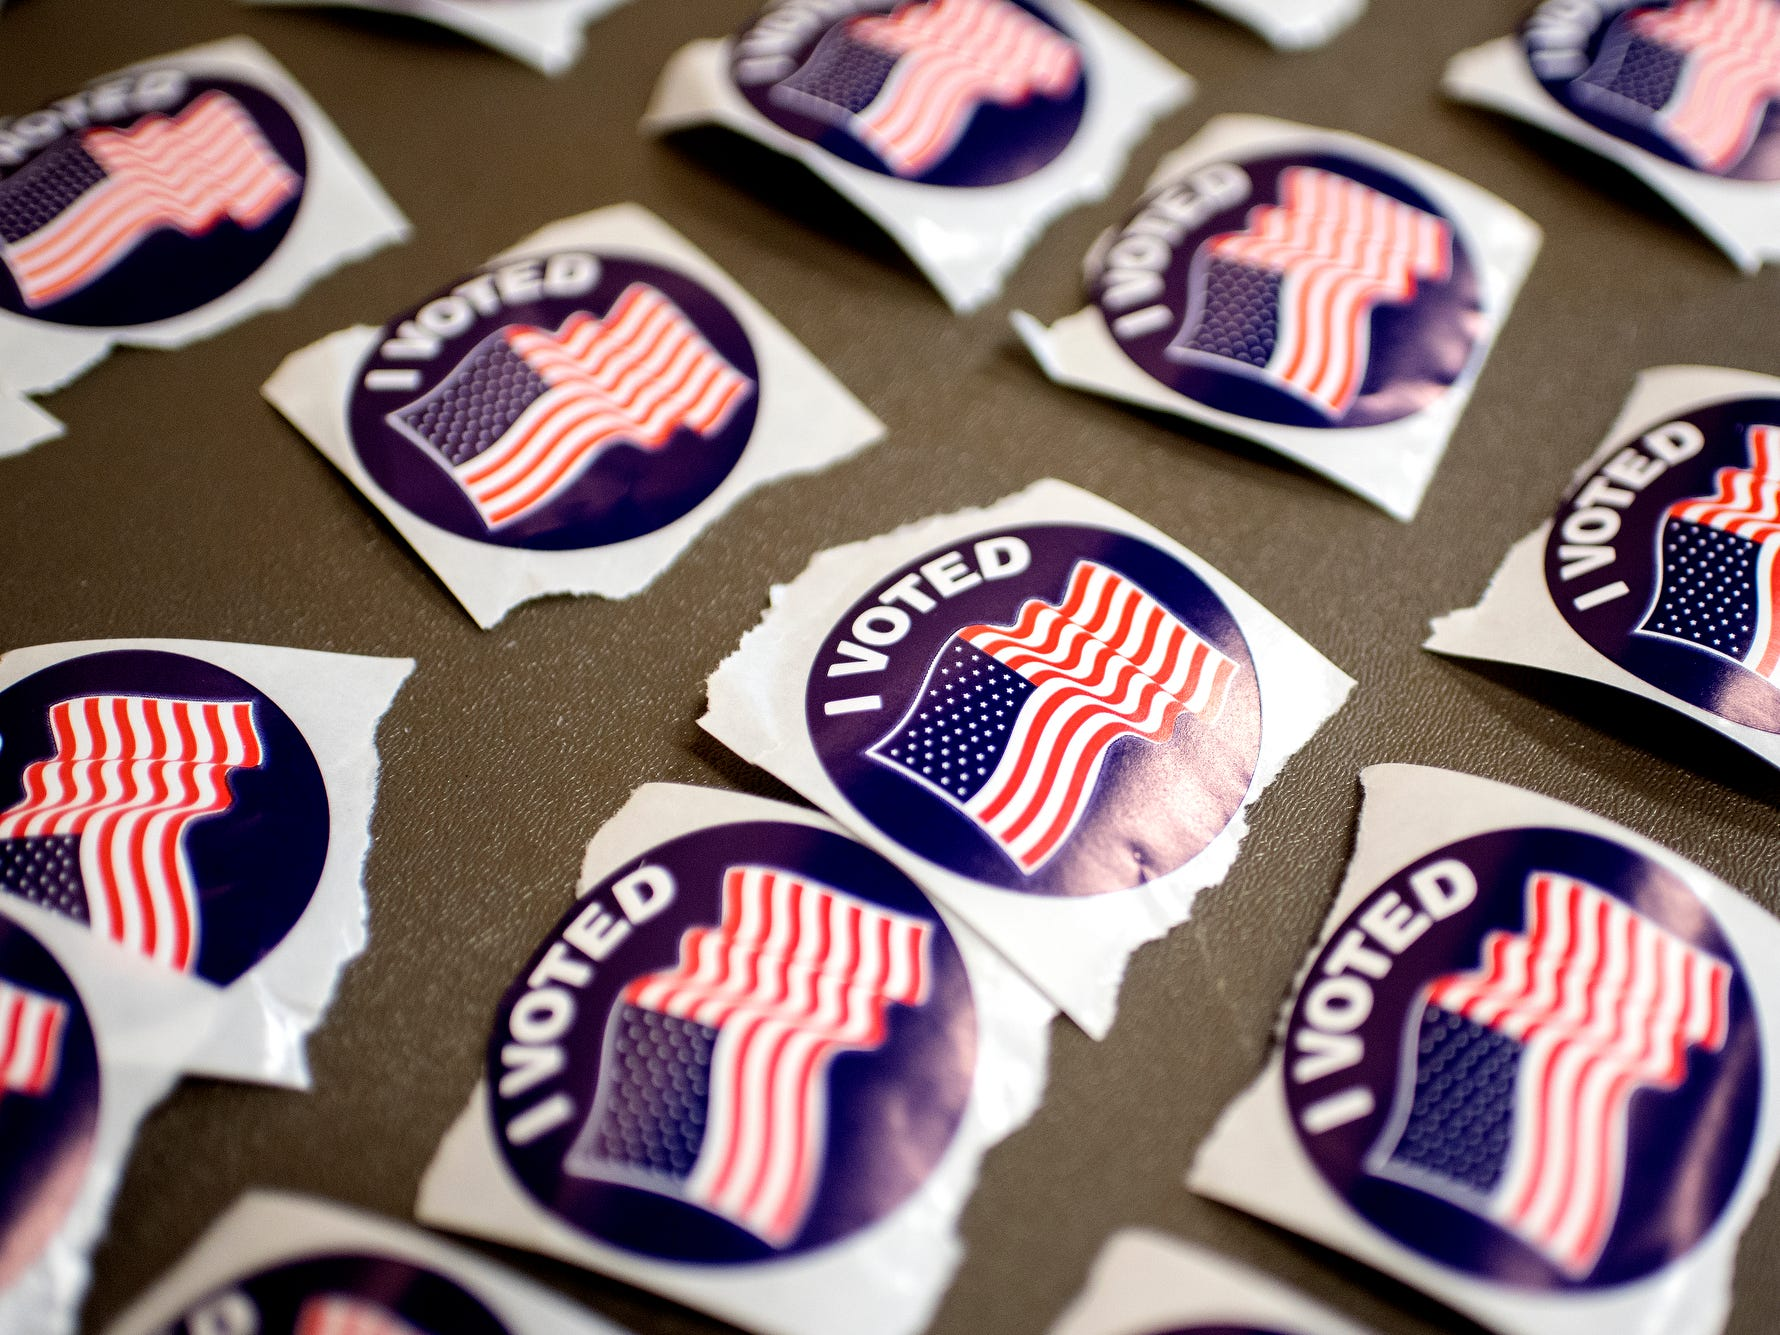 Stickers for voters are displayed on a table at the polling place at Pattengill School on Tuesday, Aug. 7, 2018, in Lansing.